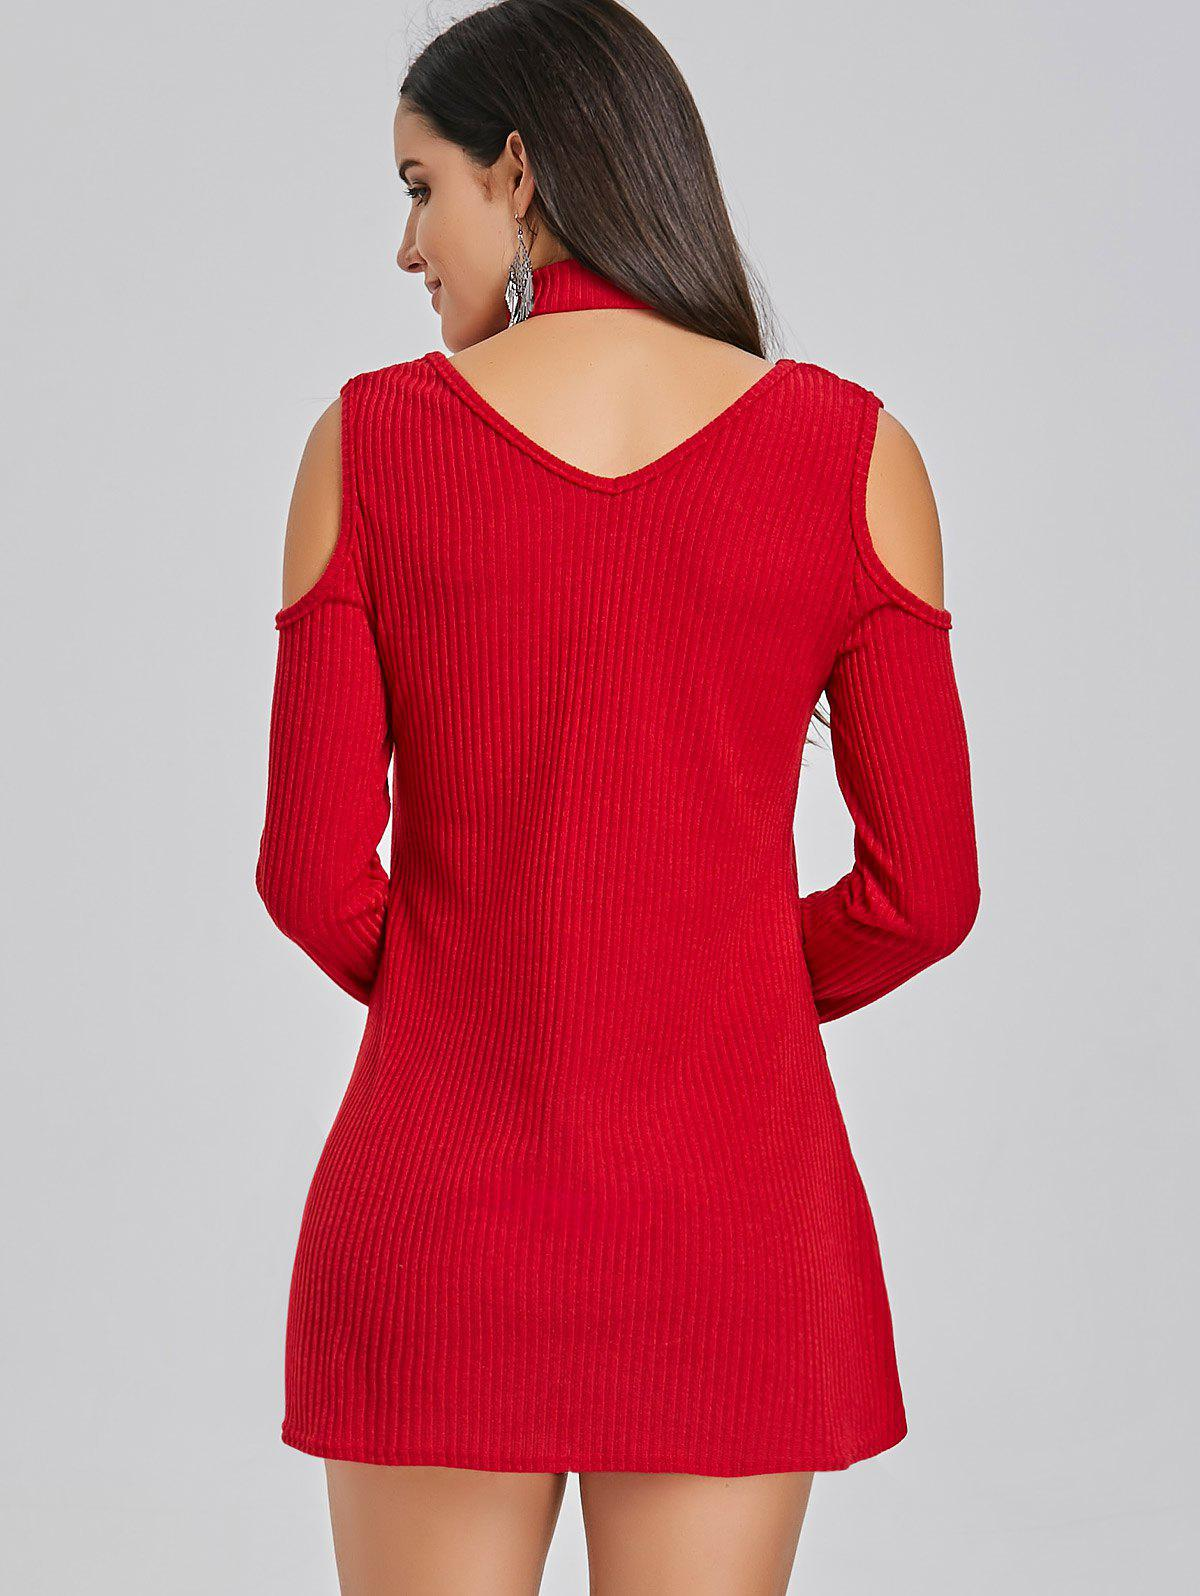 Mini Cold Shoulder Sweater Dress - RED L